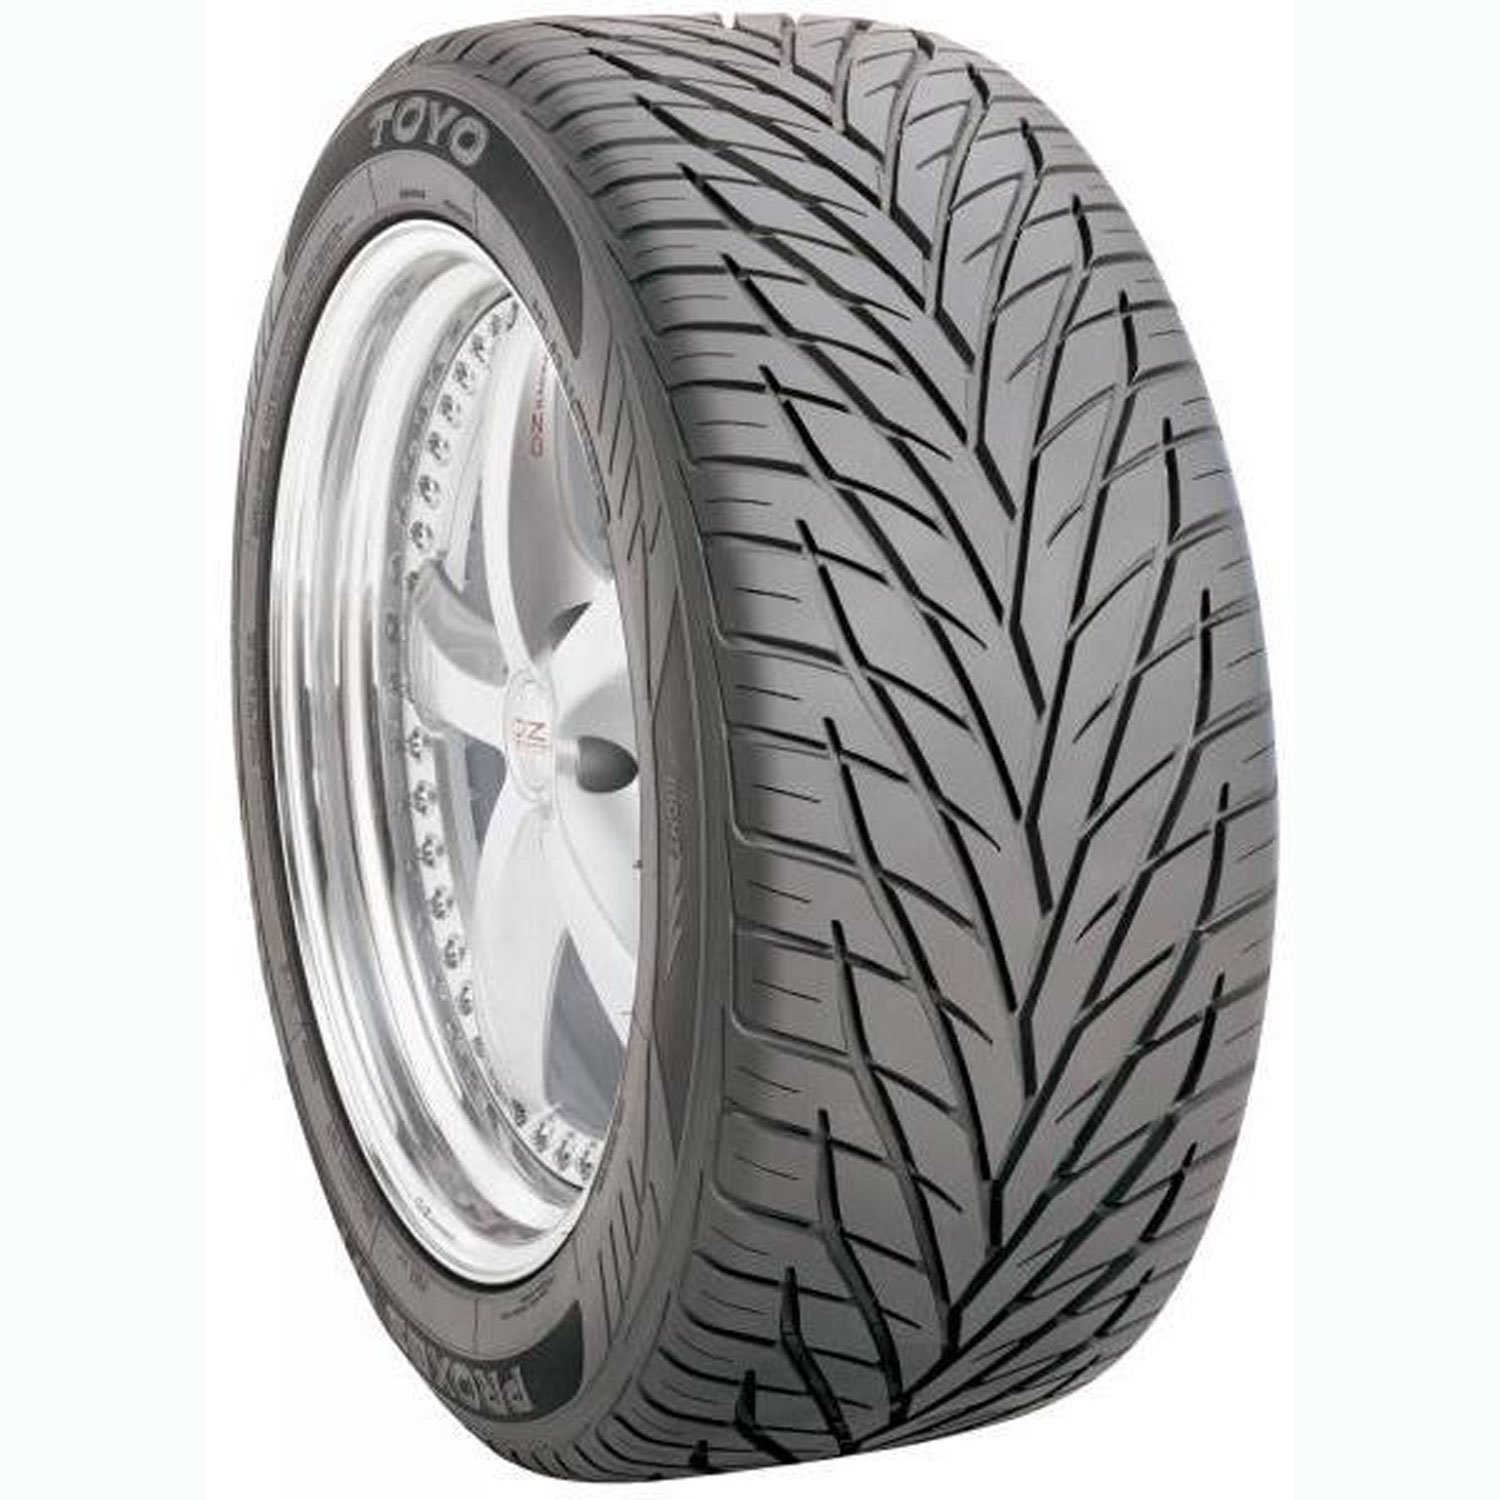 Toyo Proxes S/T All-Season Radial Tire - 305/50R20 120V